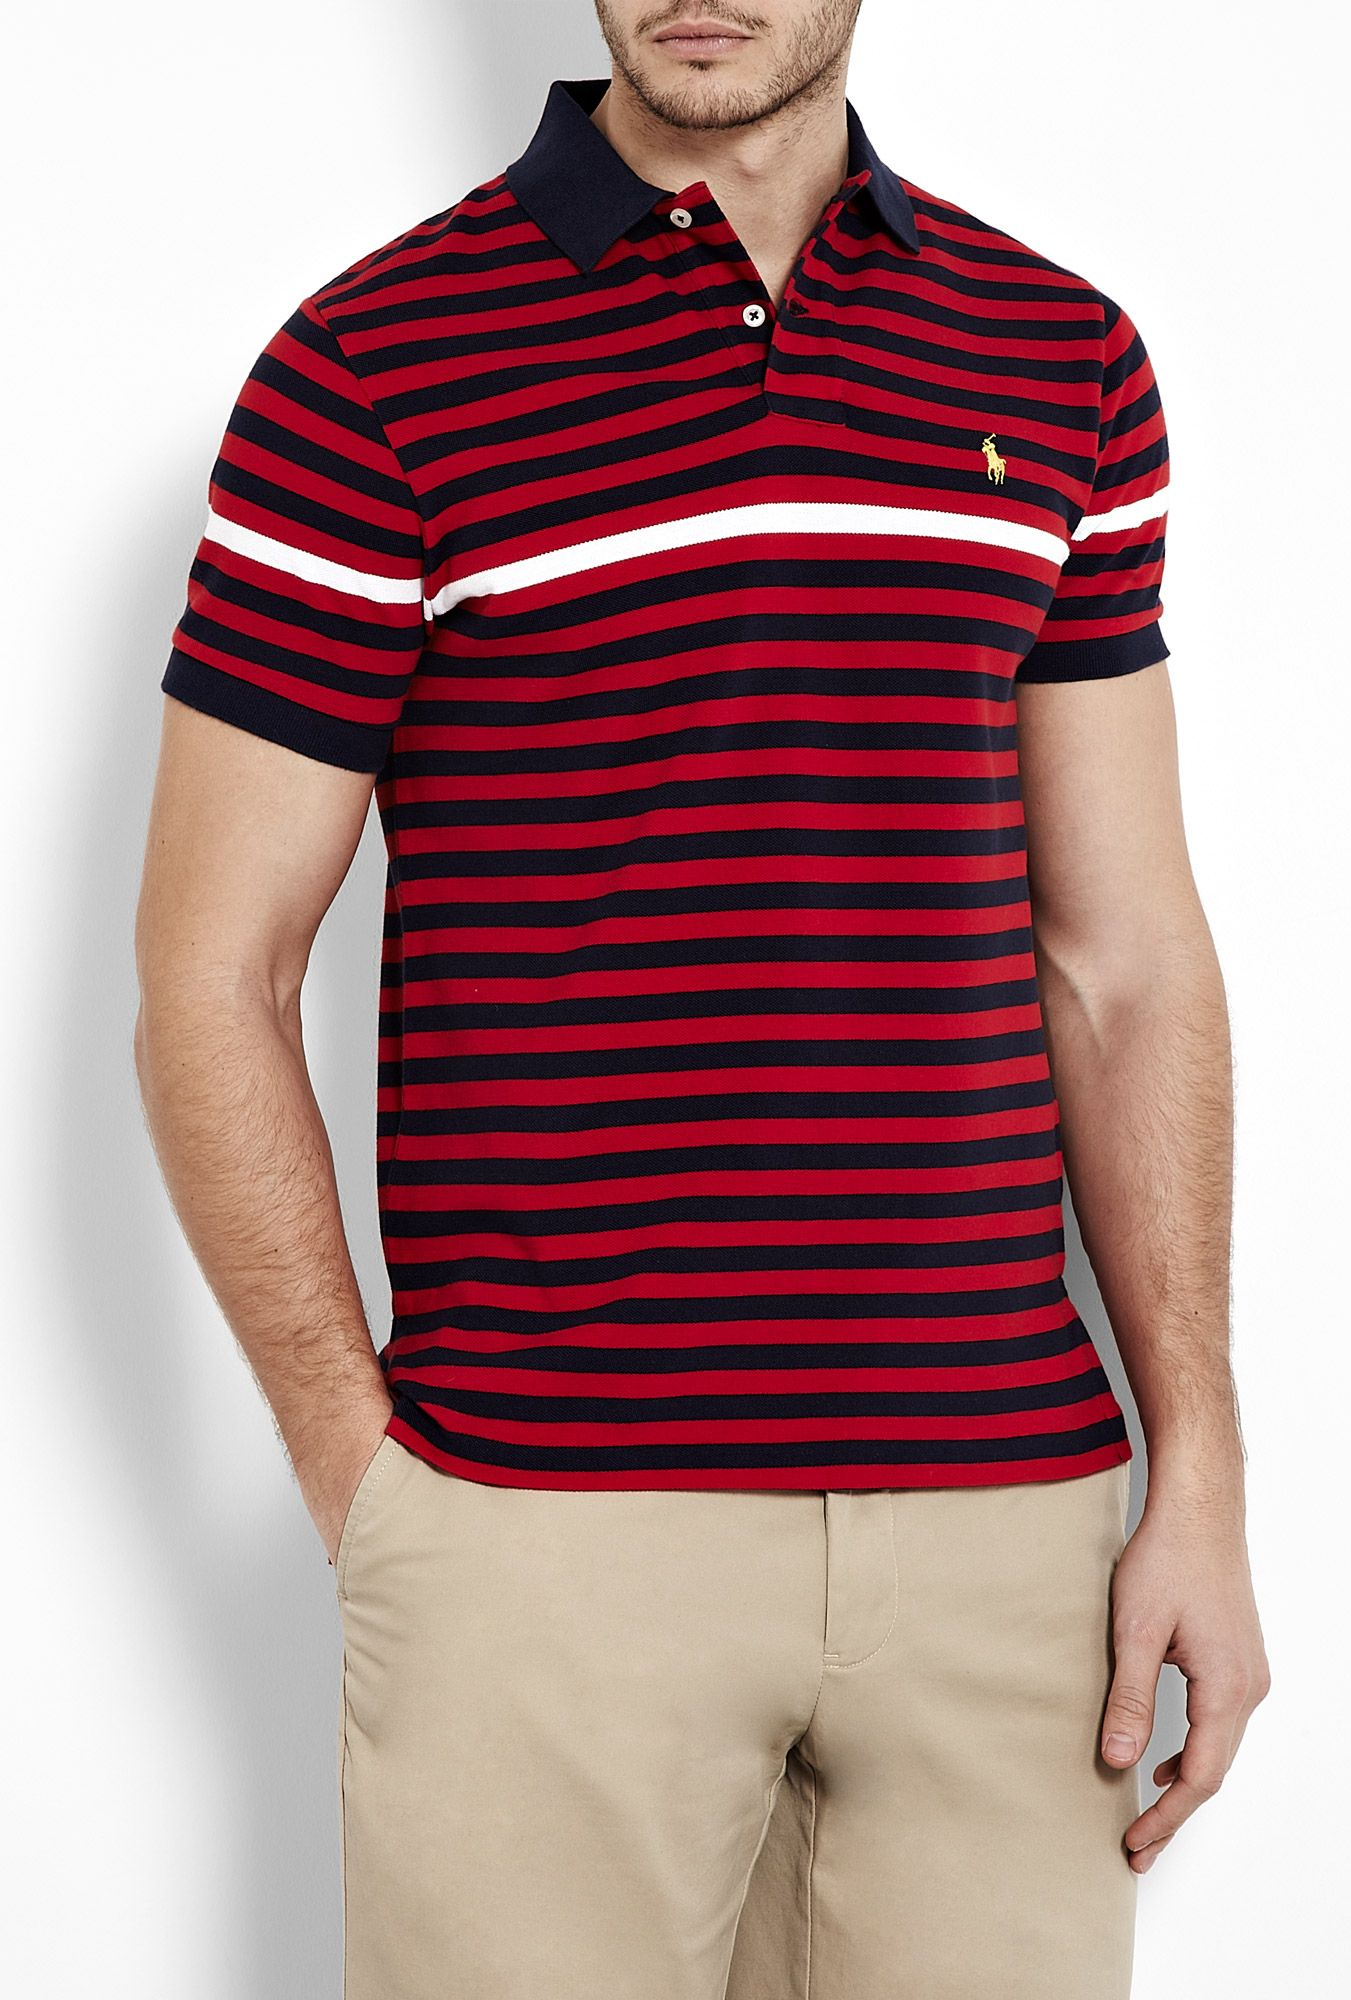 Navy Red White Stripe Polo Shirt by Polo Ralph Lauren